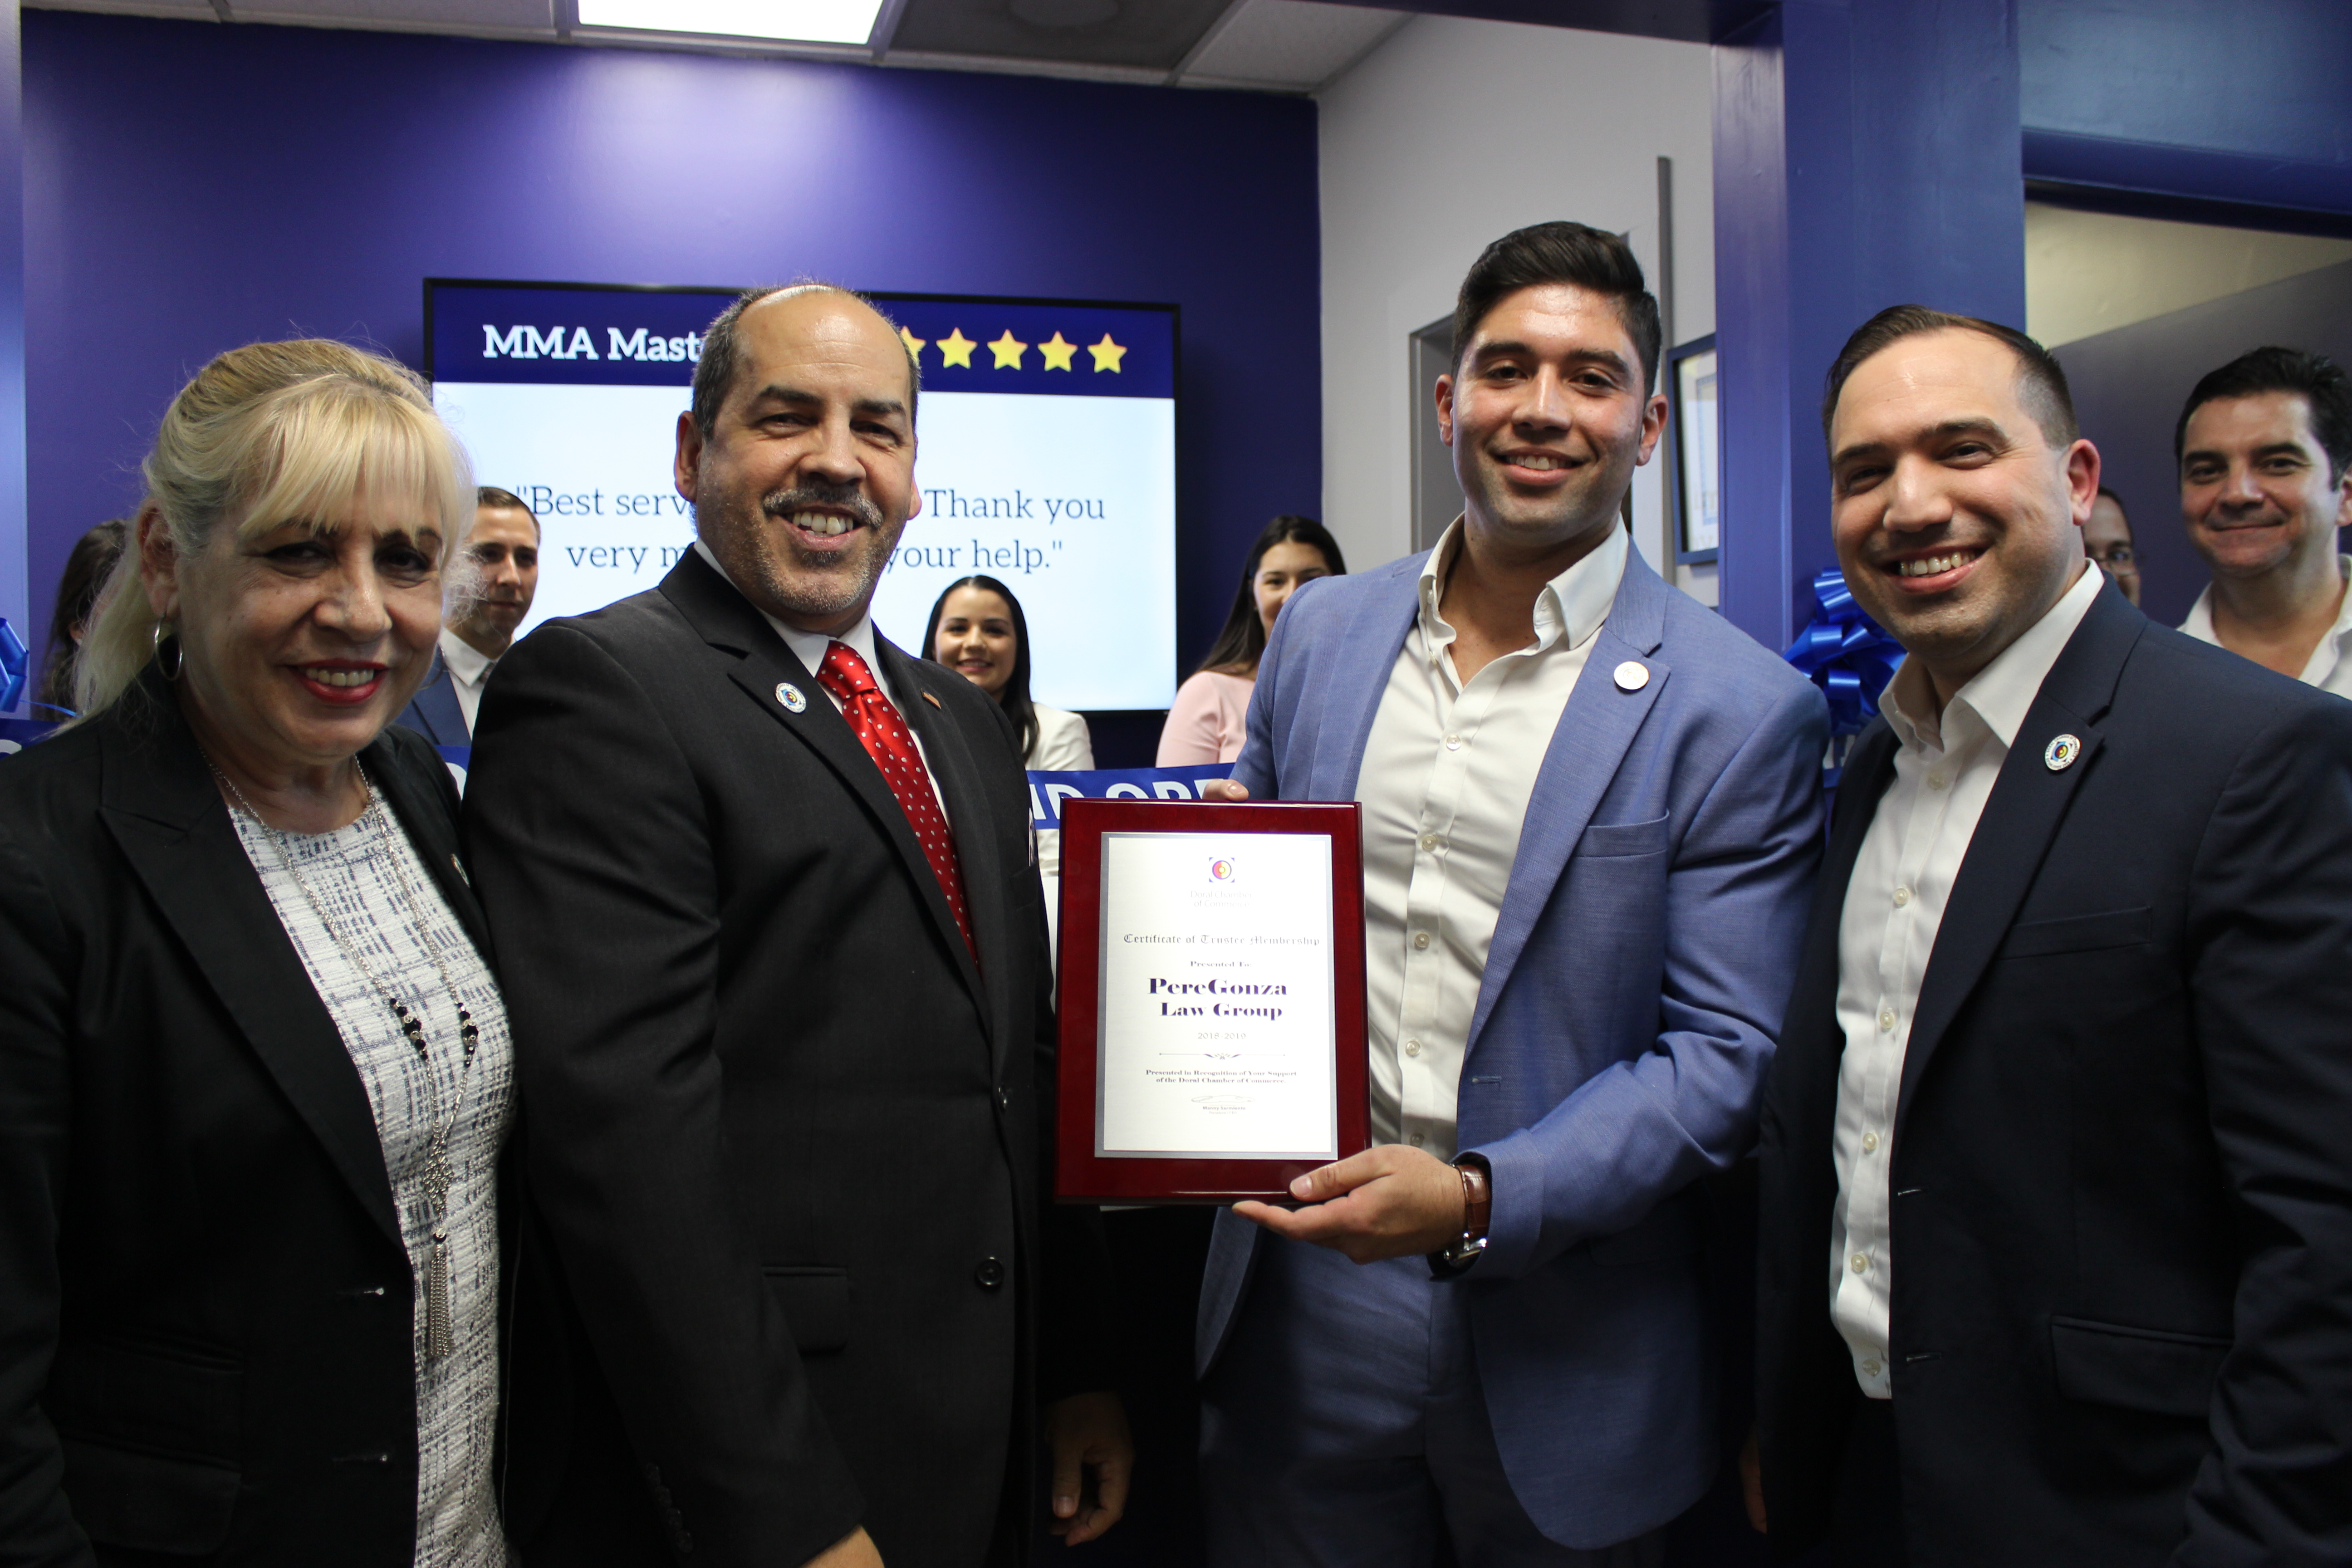 Best of Doral™ plaque being given to PereGonza Law.